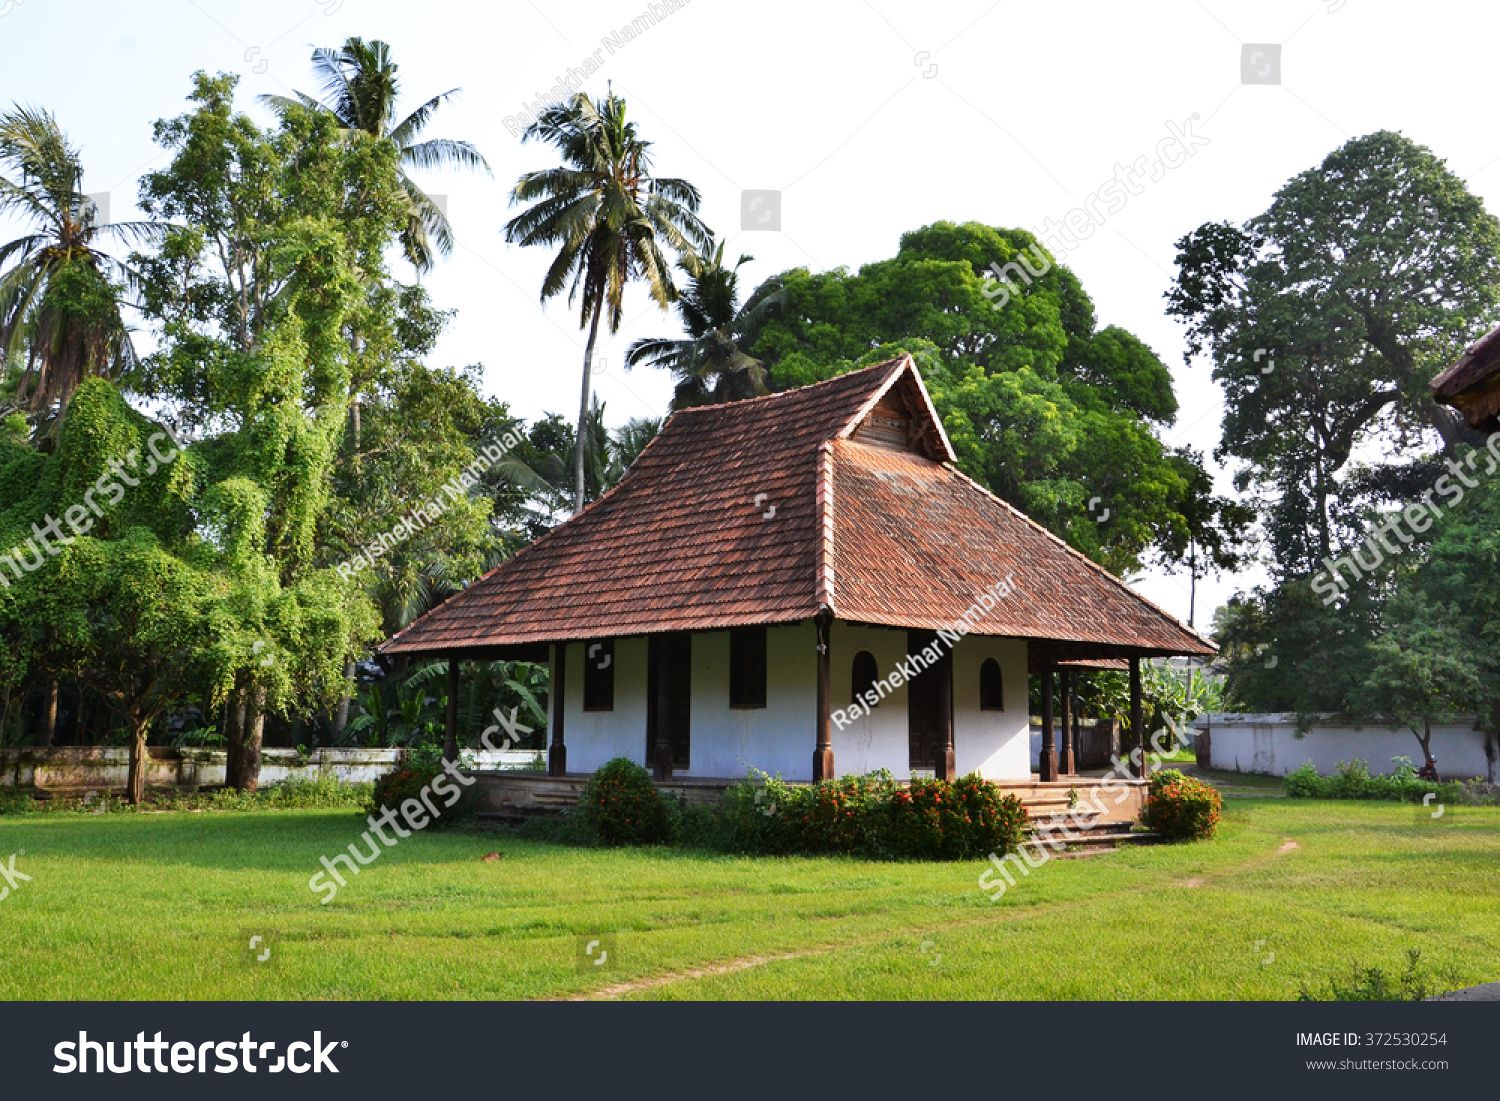 Kerala traditional houses old interior inspiration for Old traditional houses